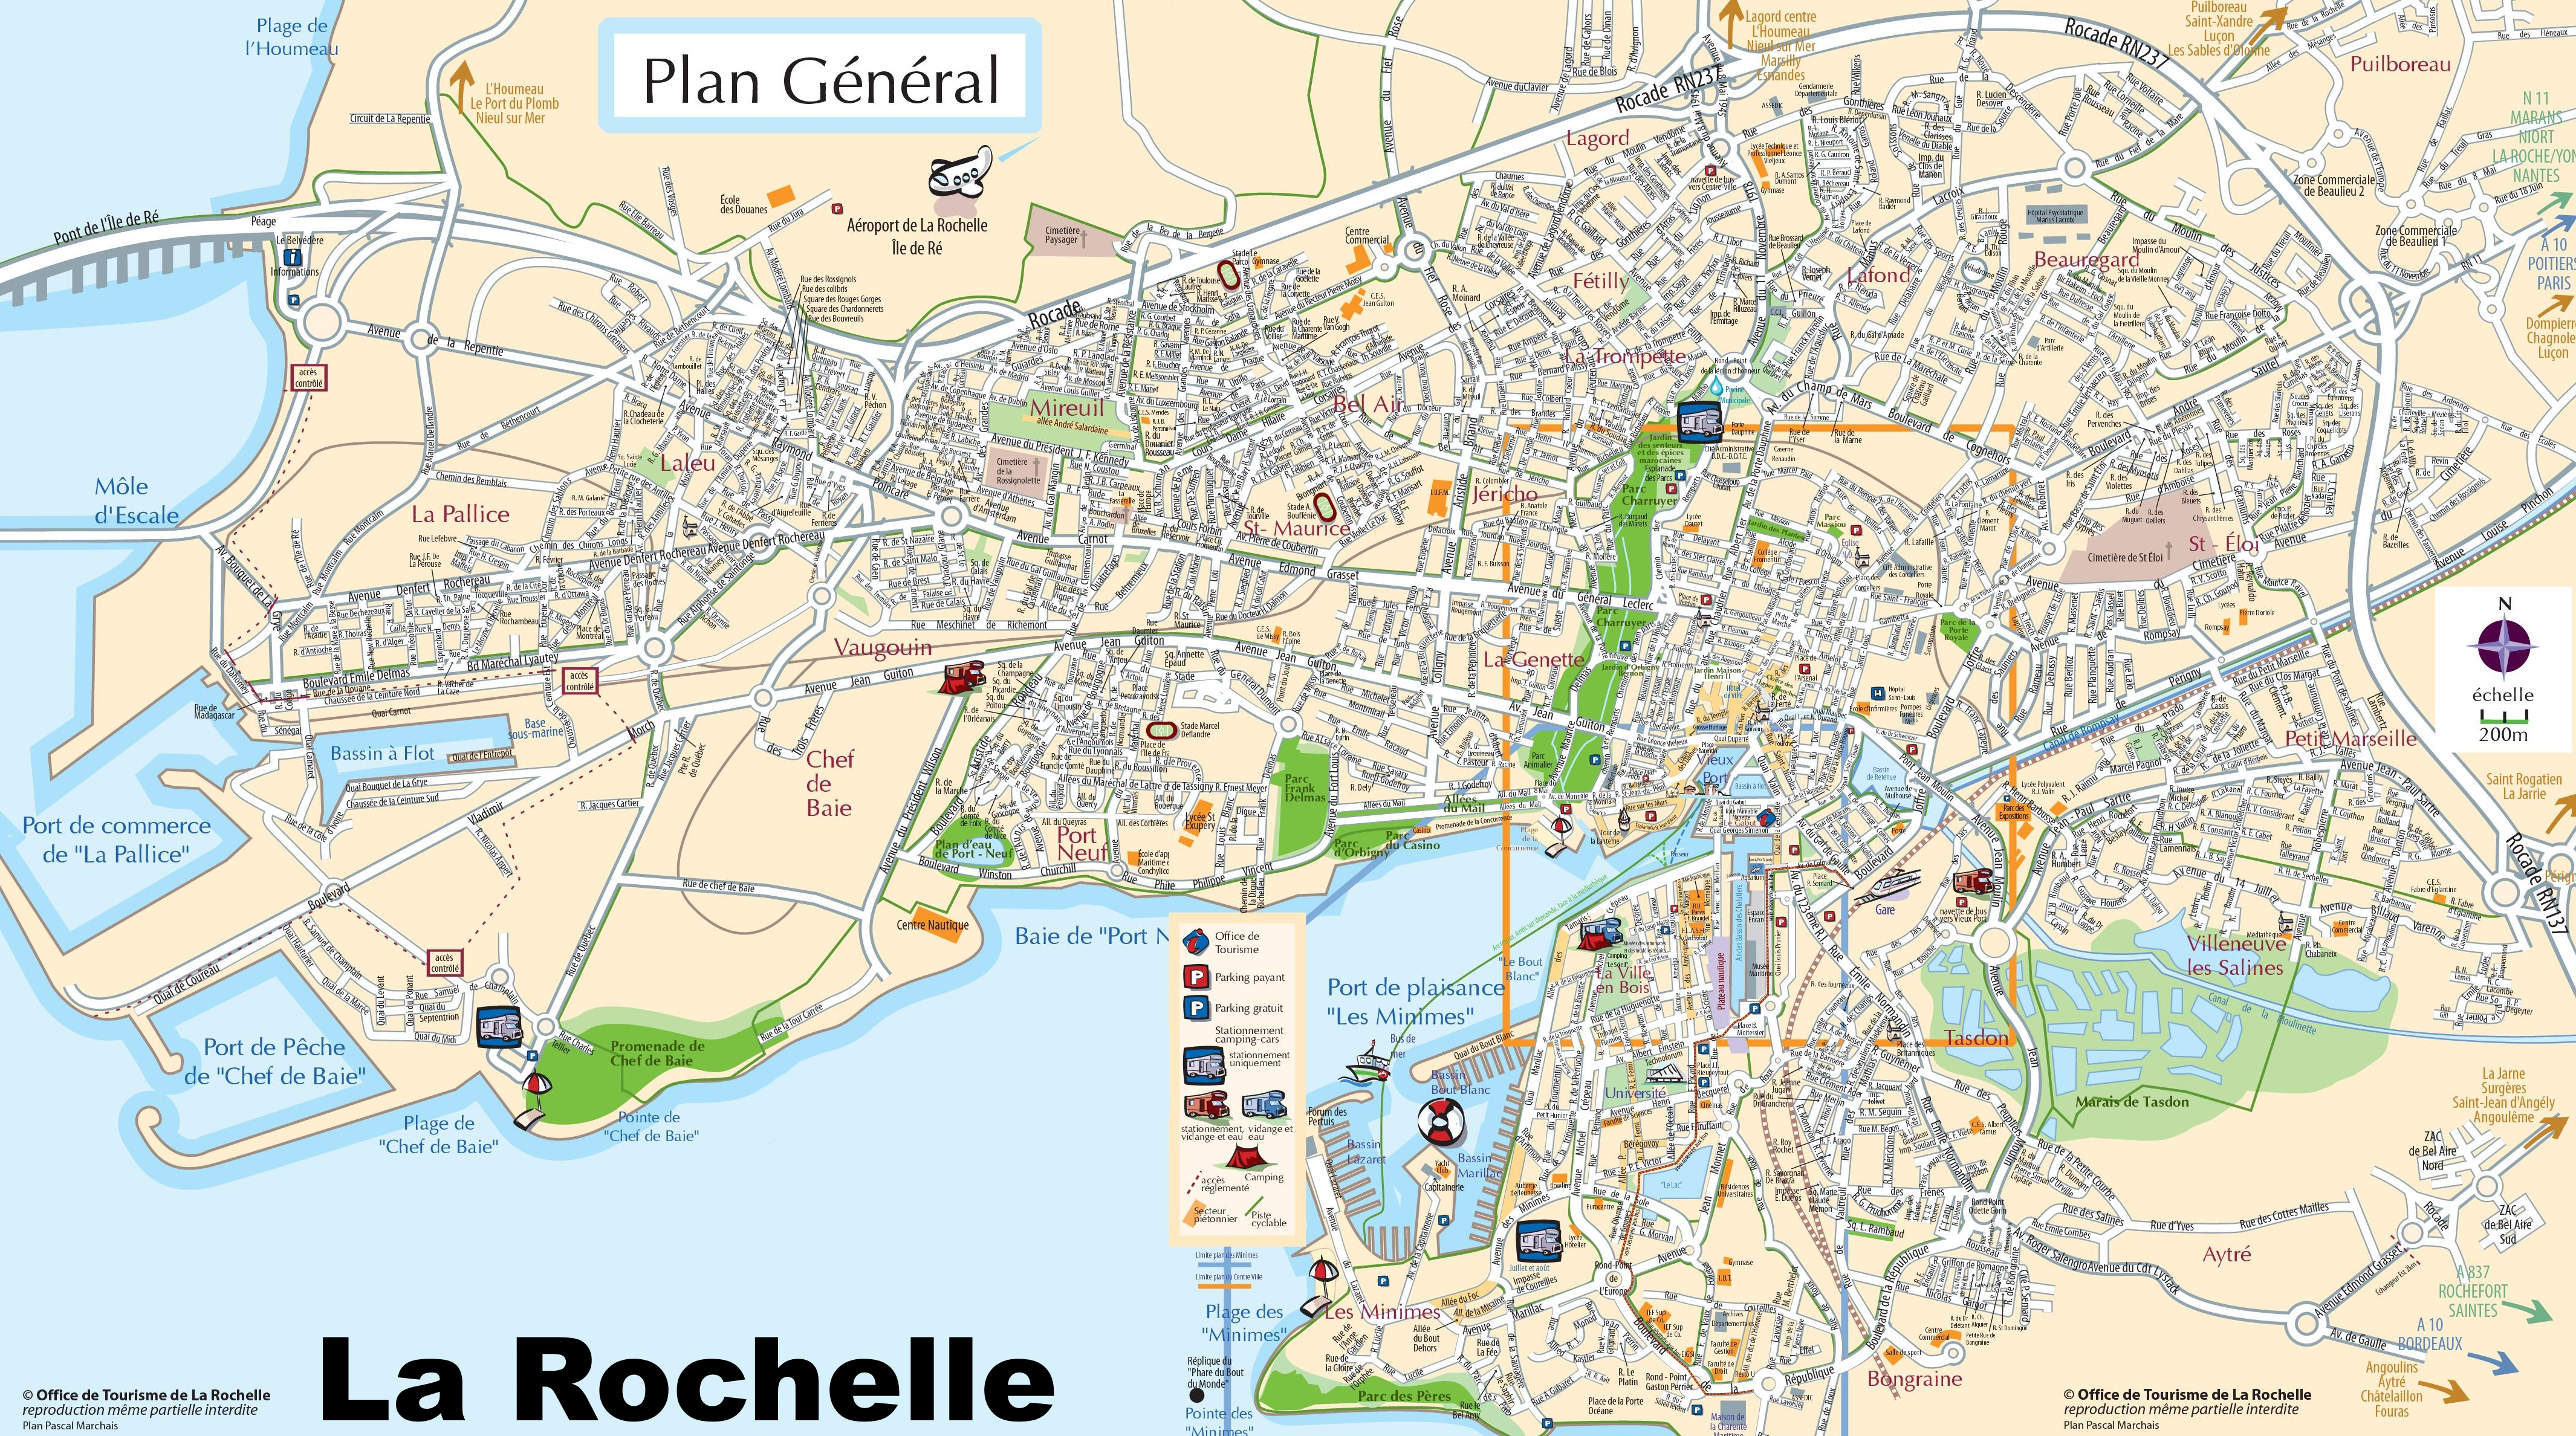 map of venice italy streets with La Rochelle Tourist Map on Bonn Bad Godesberg Map likewise Hamburg City Centre Map also La Rochelle Tourist Map as well Pool Dubai Mall besides Trieste Italy Yay Or Nay.